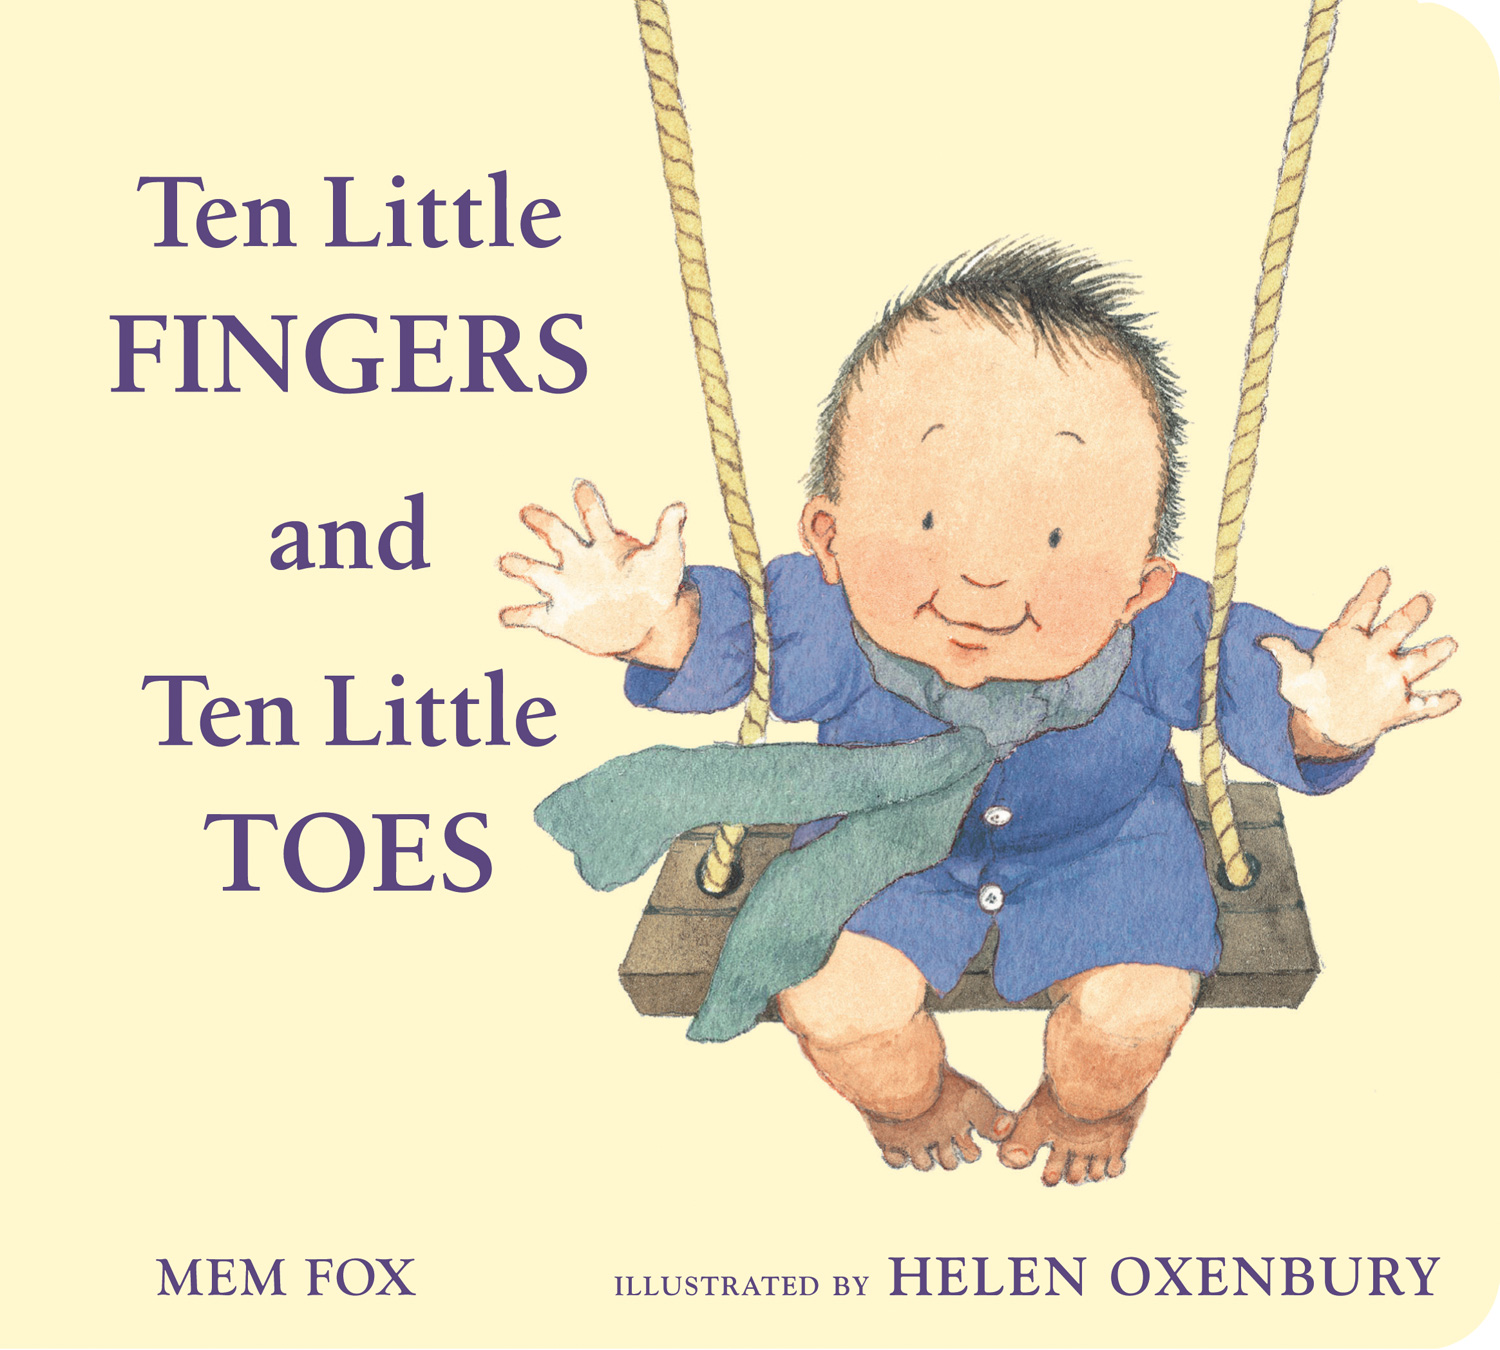 Ten Little Fingers and Ten Little Toes padded board book-9780547366203